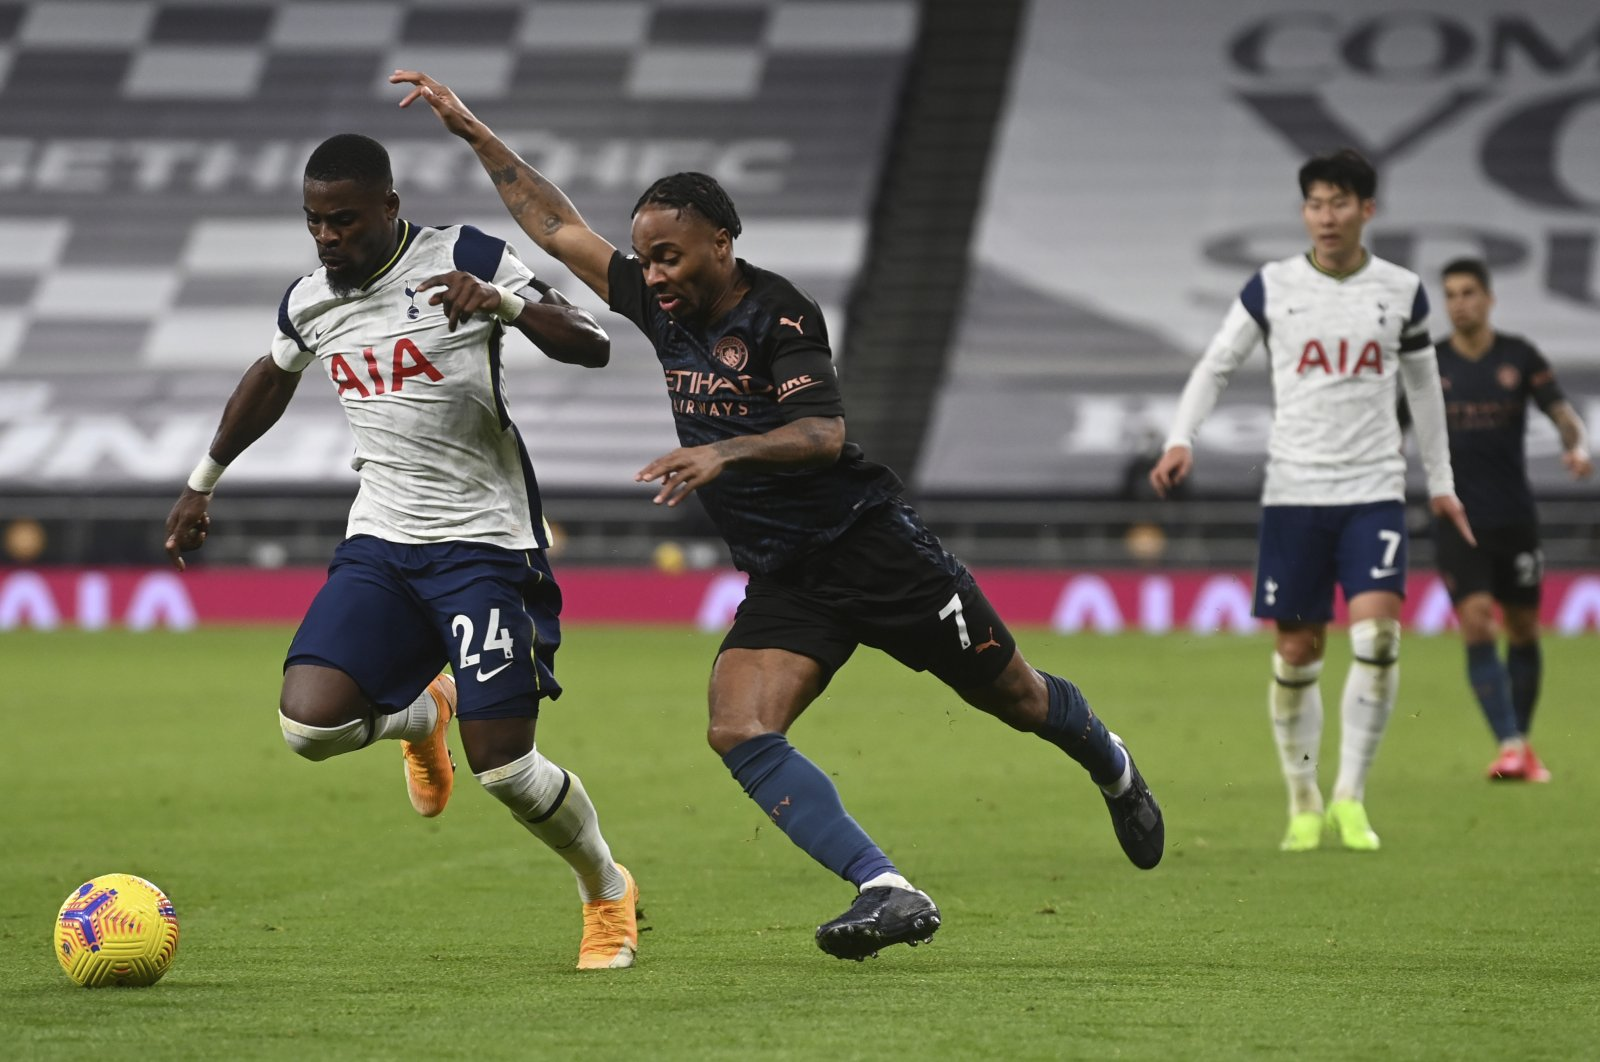 Tottenham's Serge Aurier (L) is challenged by Manchester City's Raheem Sterling (R) during a match in London, England, Nov. 21, 2020. (AP Photo)